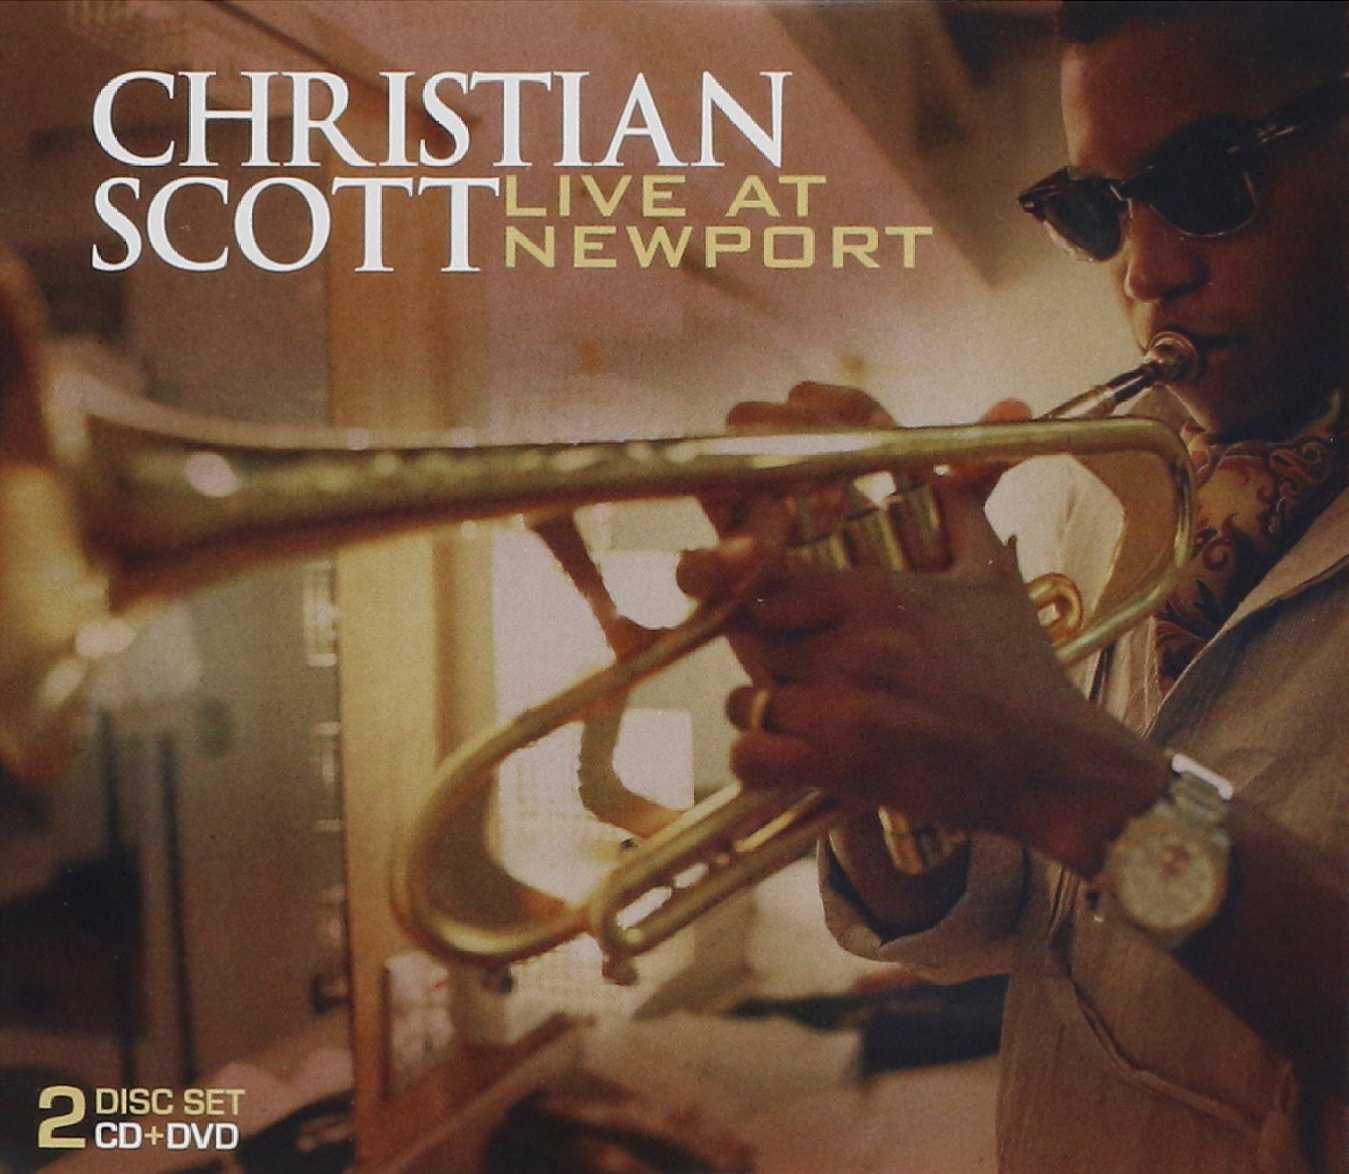 Christian Scott. Live At Newport (CD+DVD) zoolect zoolect embryolody live at alexey kozlov club deluxe numbered edition cd dvd